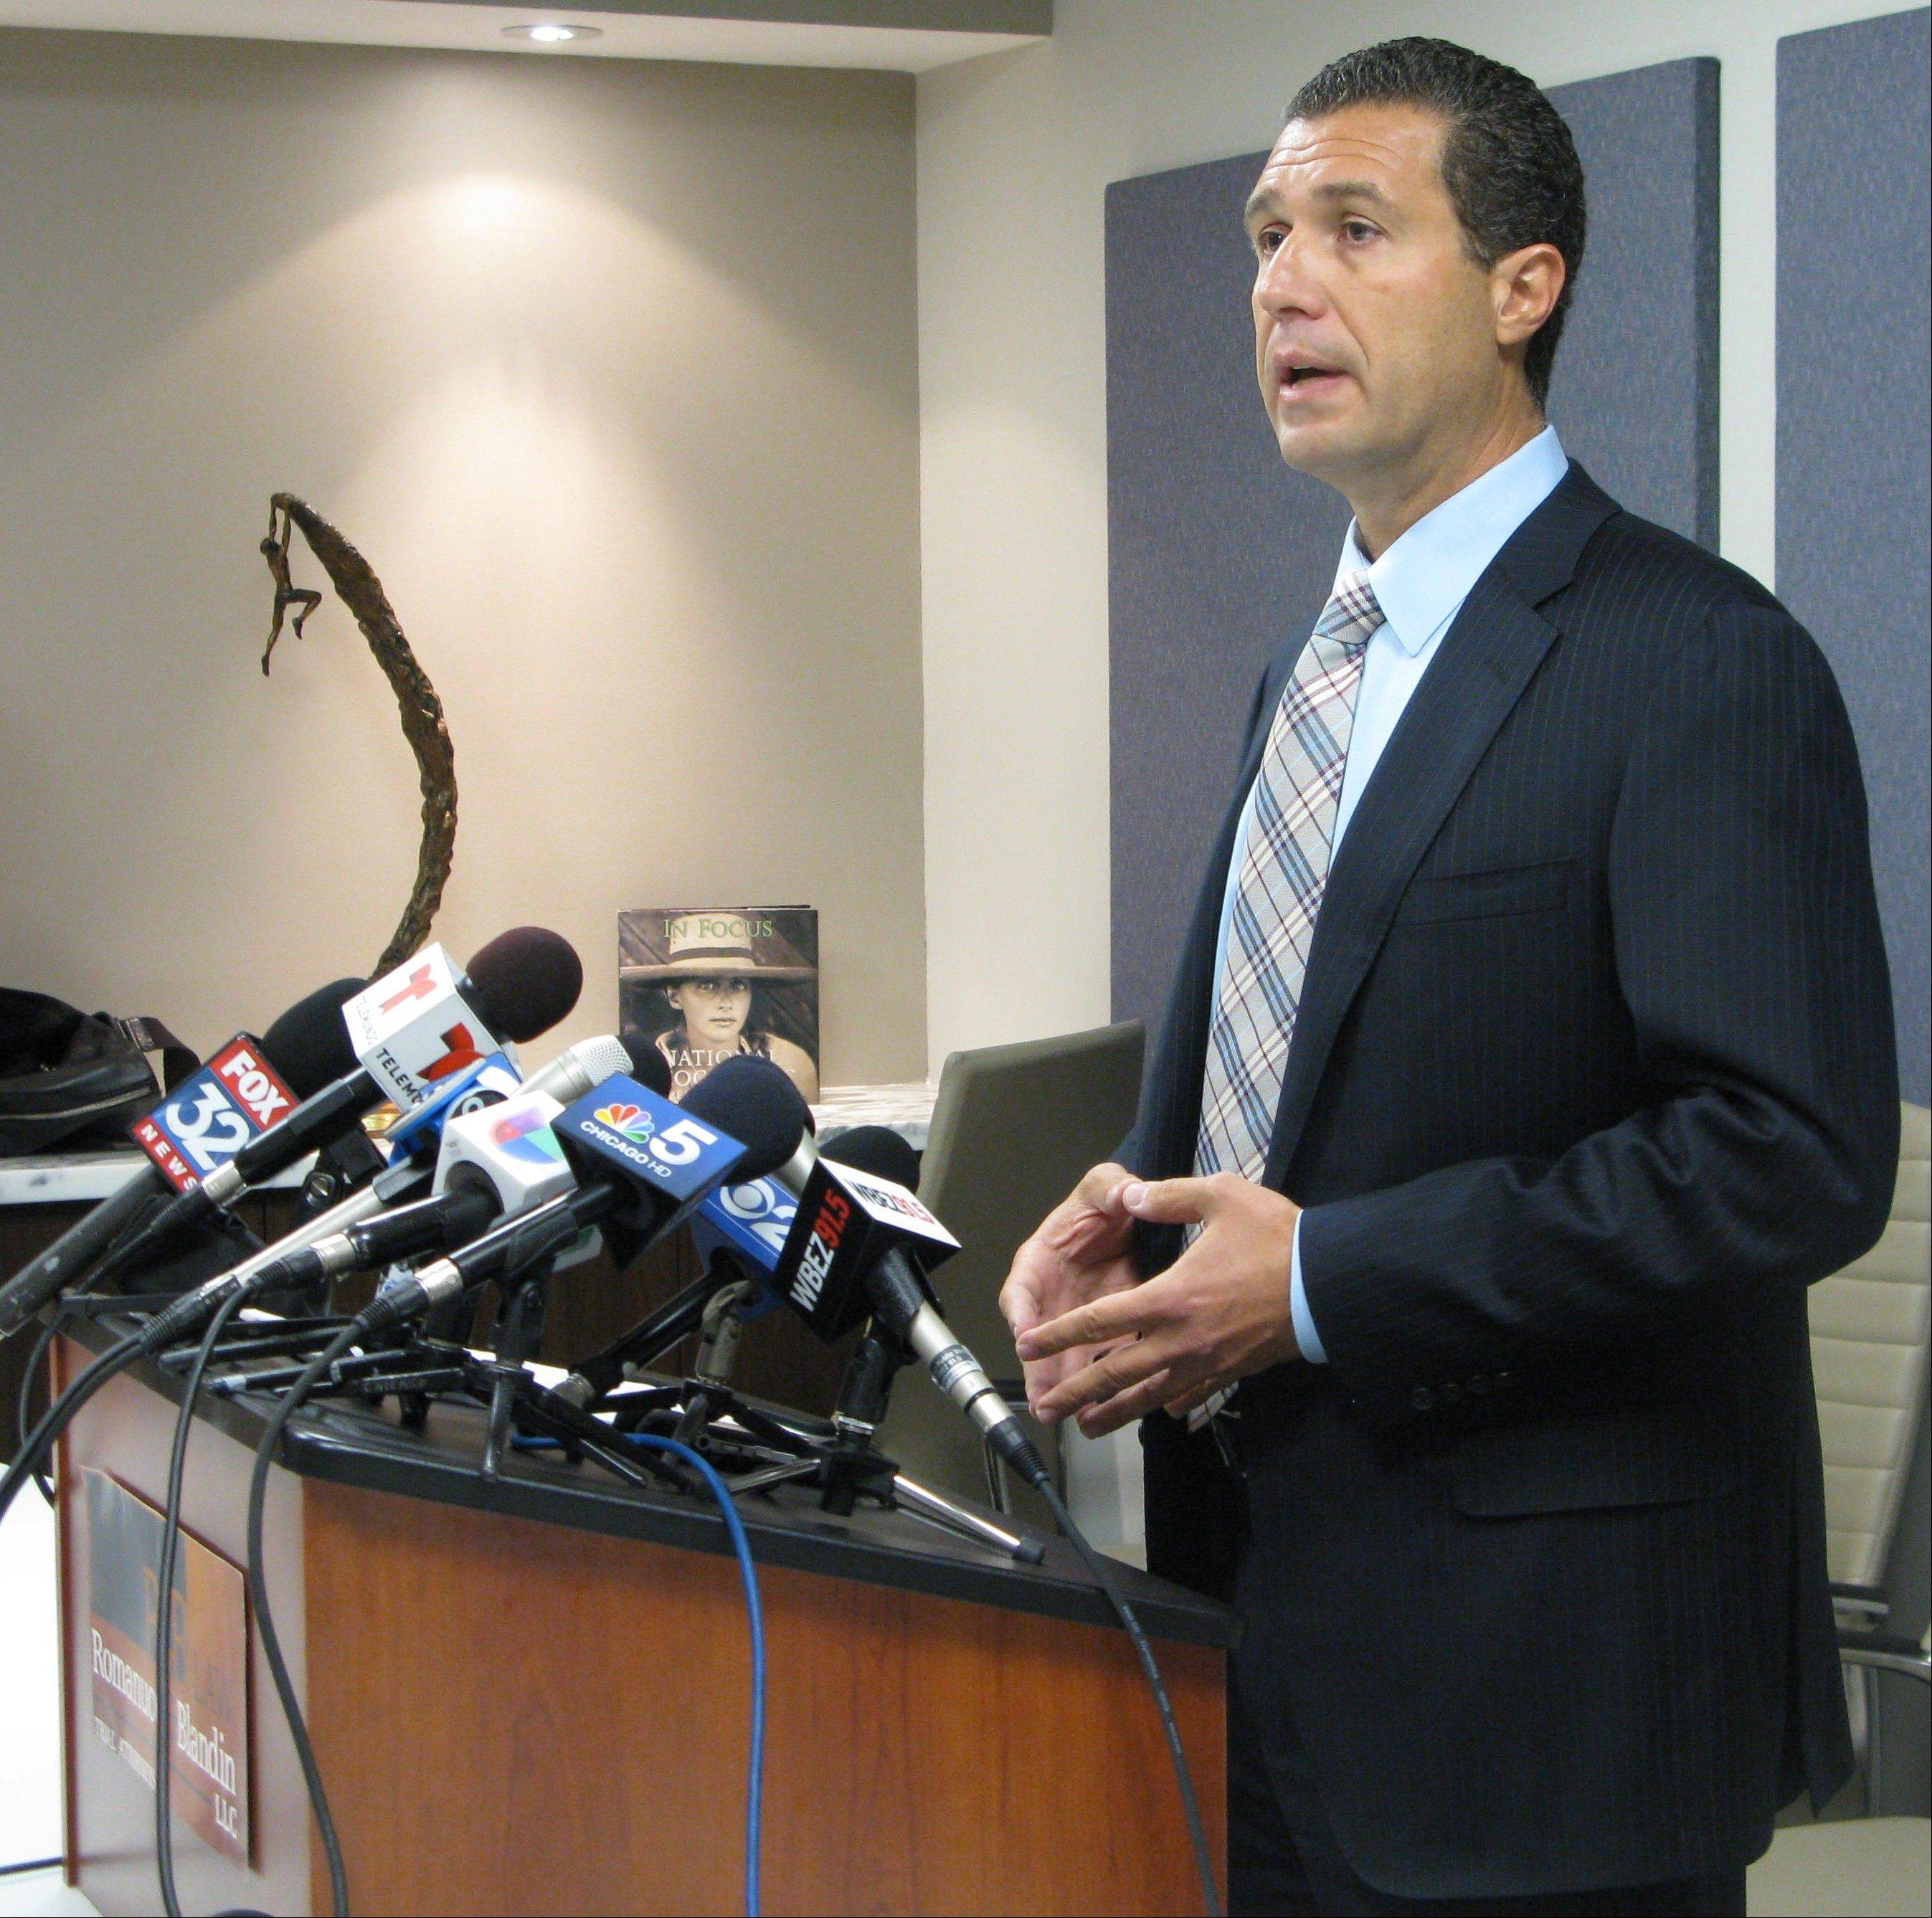 Antonio Romanucci describes the circumstances behind the latest hazing lawsuit, which says a 16-year-old soccer player was assaulted by seniors on the varsity team last fall at Maine West High School in Des Plaines. He spoke at a news conference in Chicago.